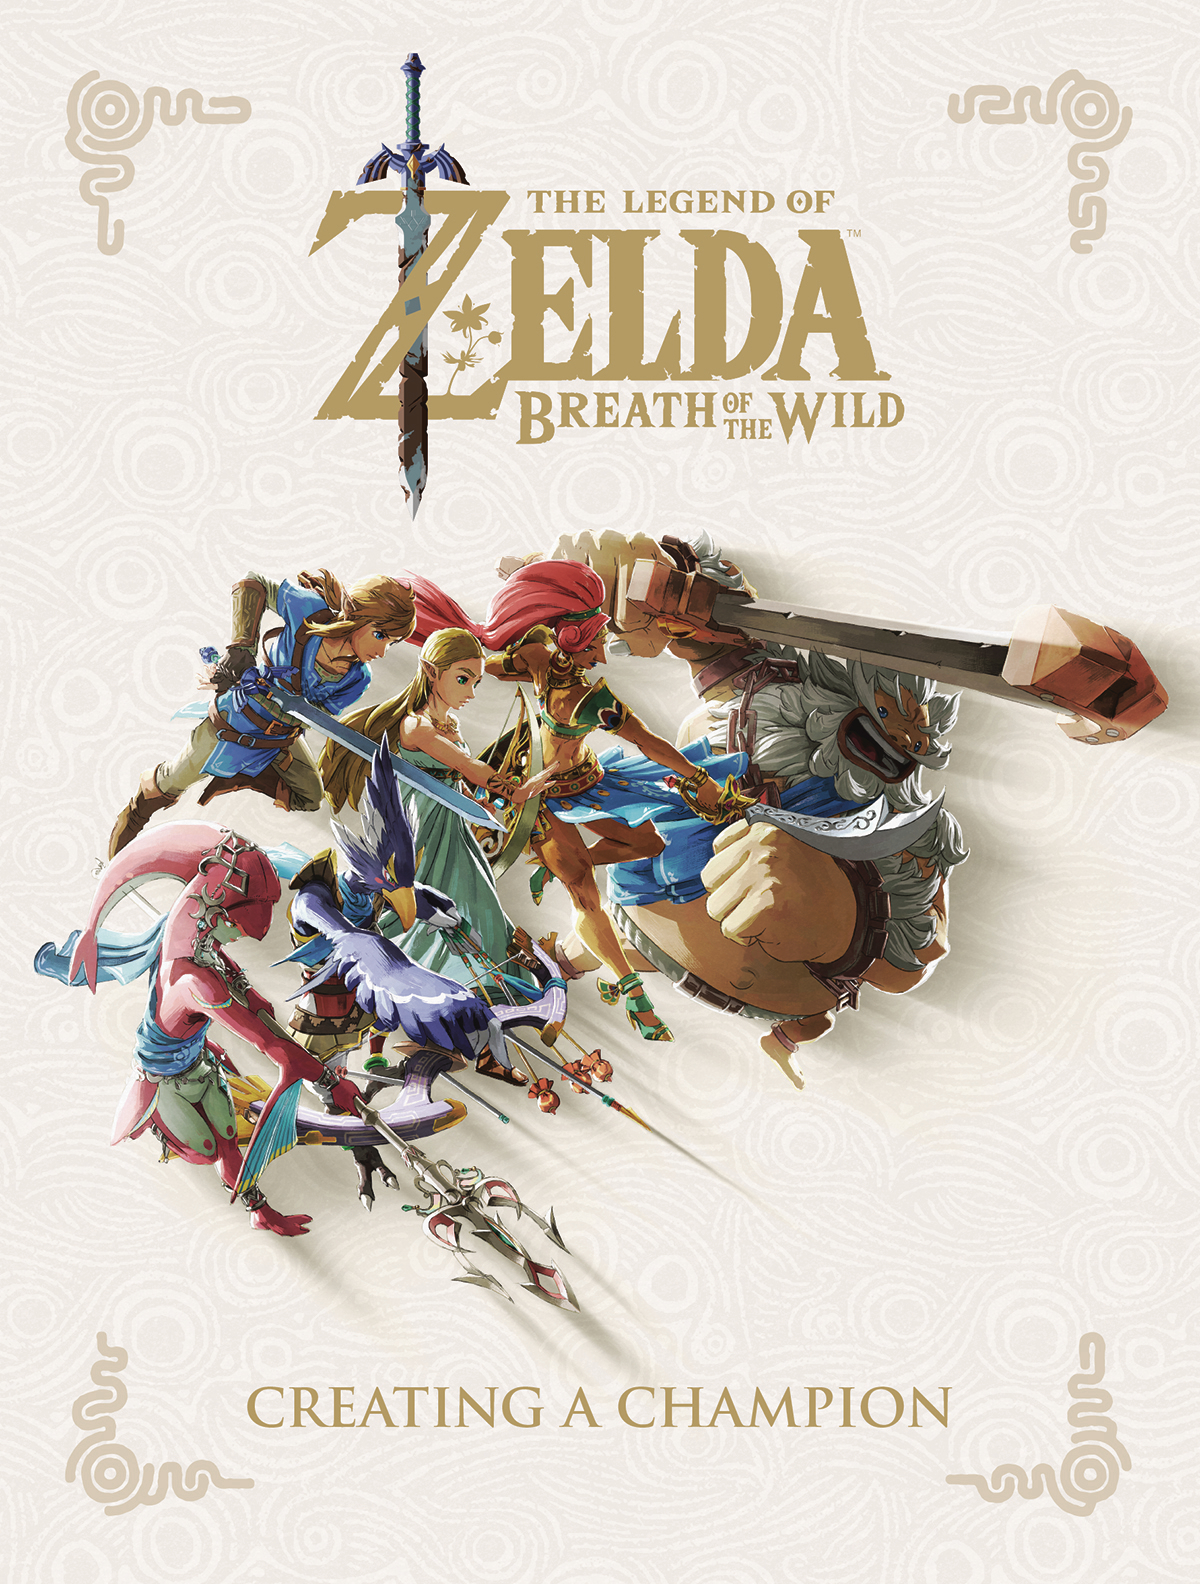 LEGEND OF ZELDA BREATH WILD CREATING A CHAMPION HC